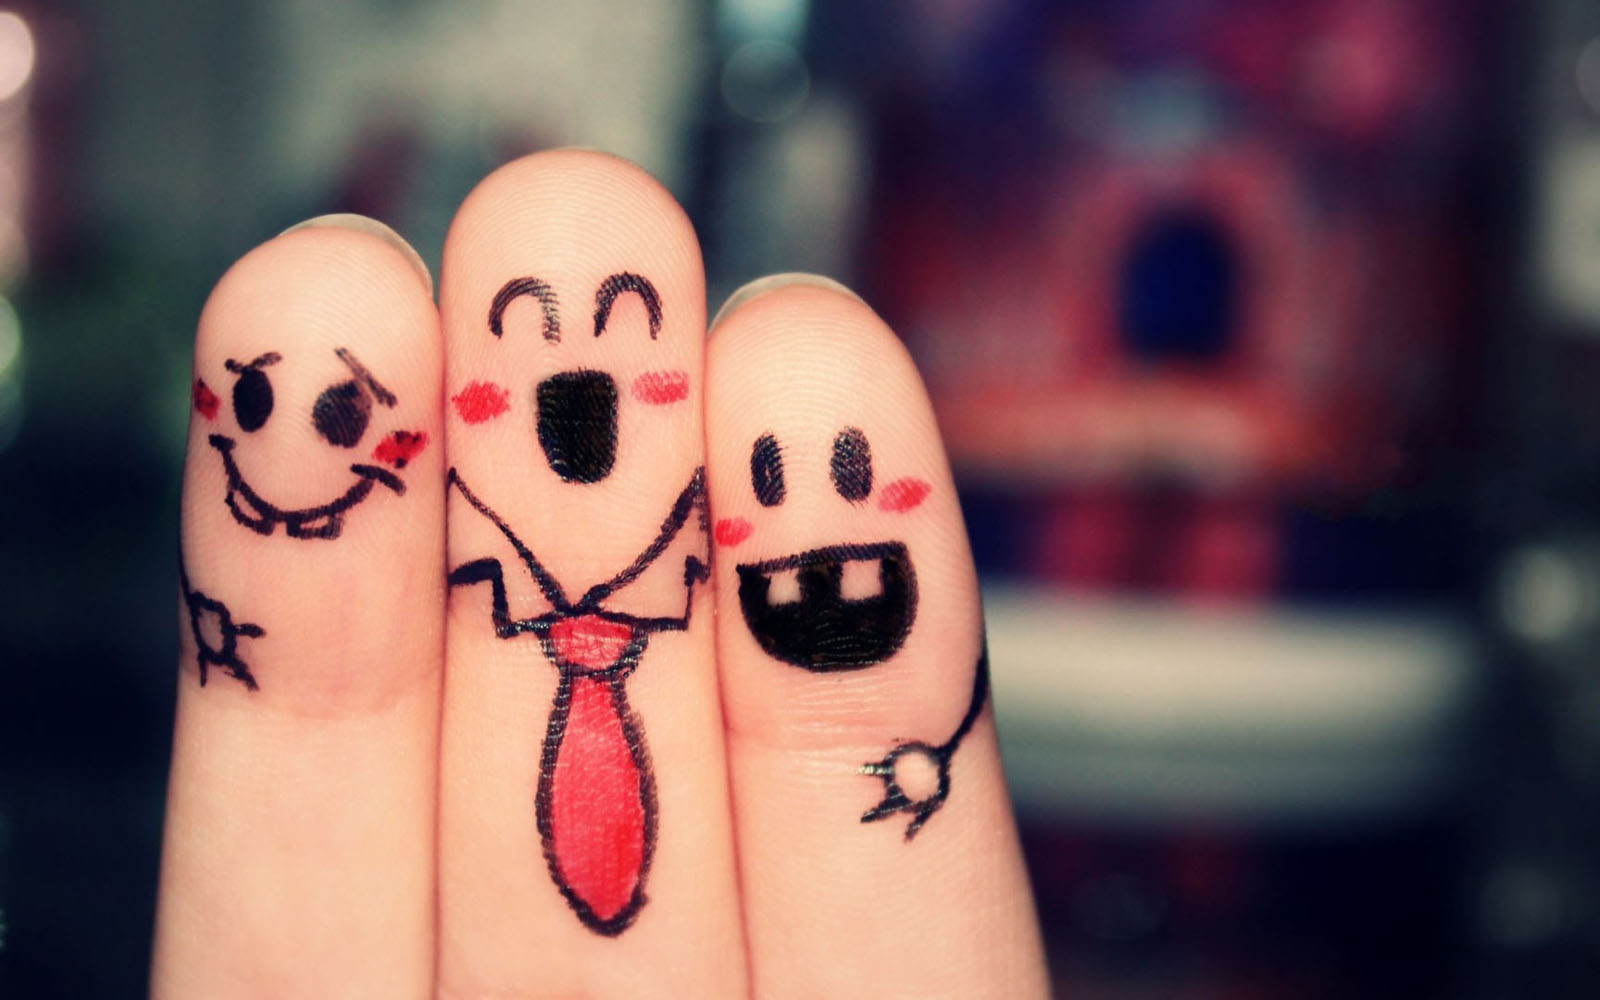 Finger love wallpaper for iPhone and Android | Funny wallpapers ...